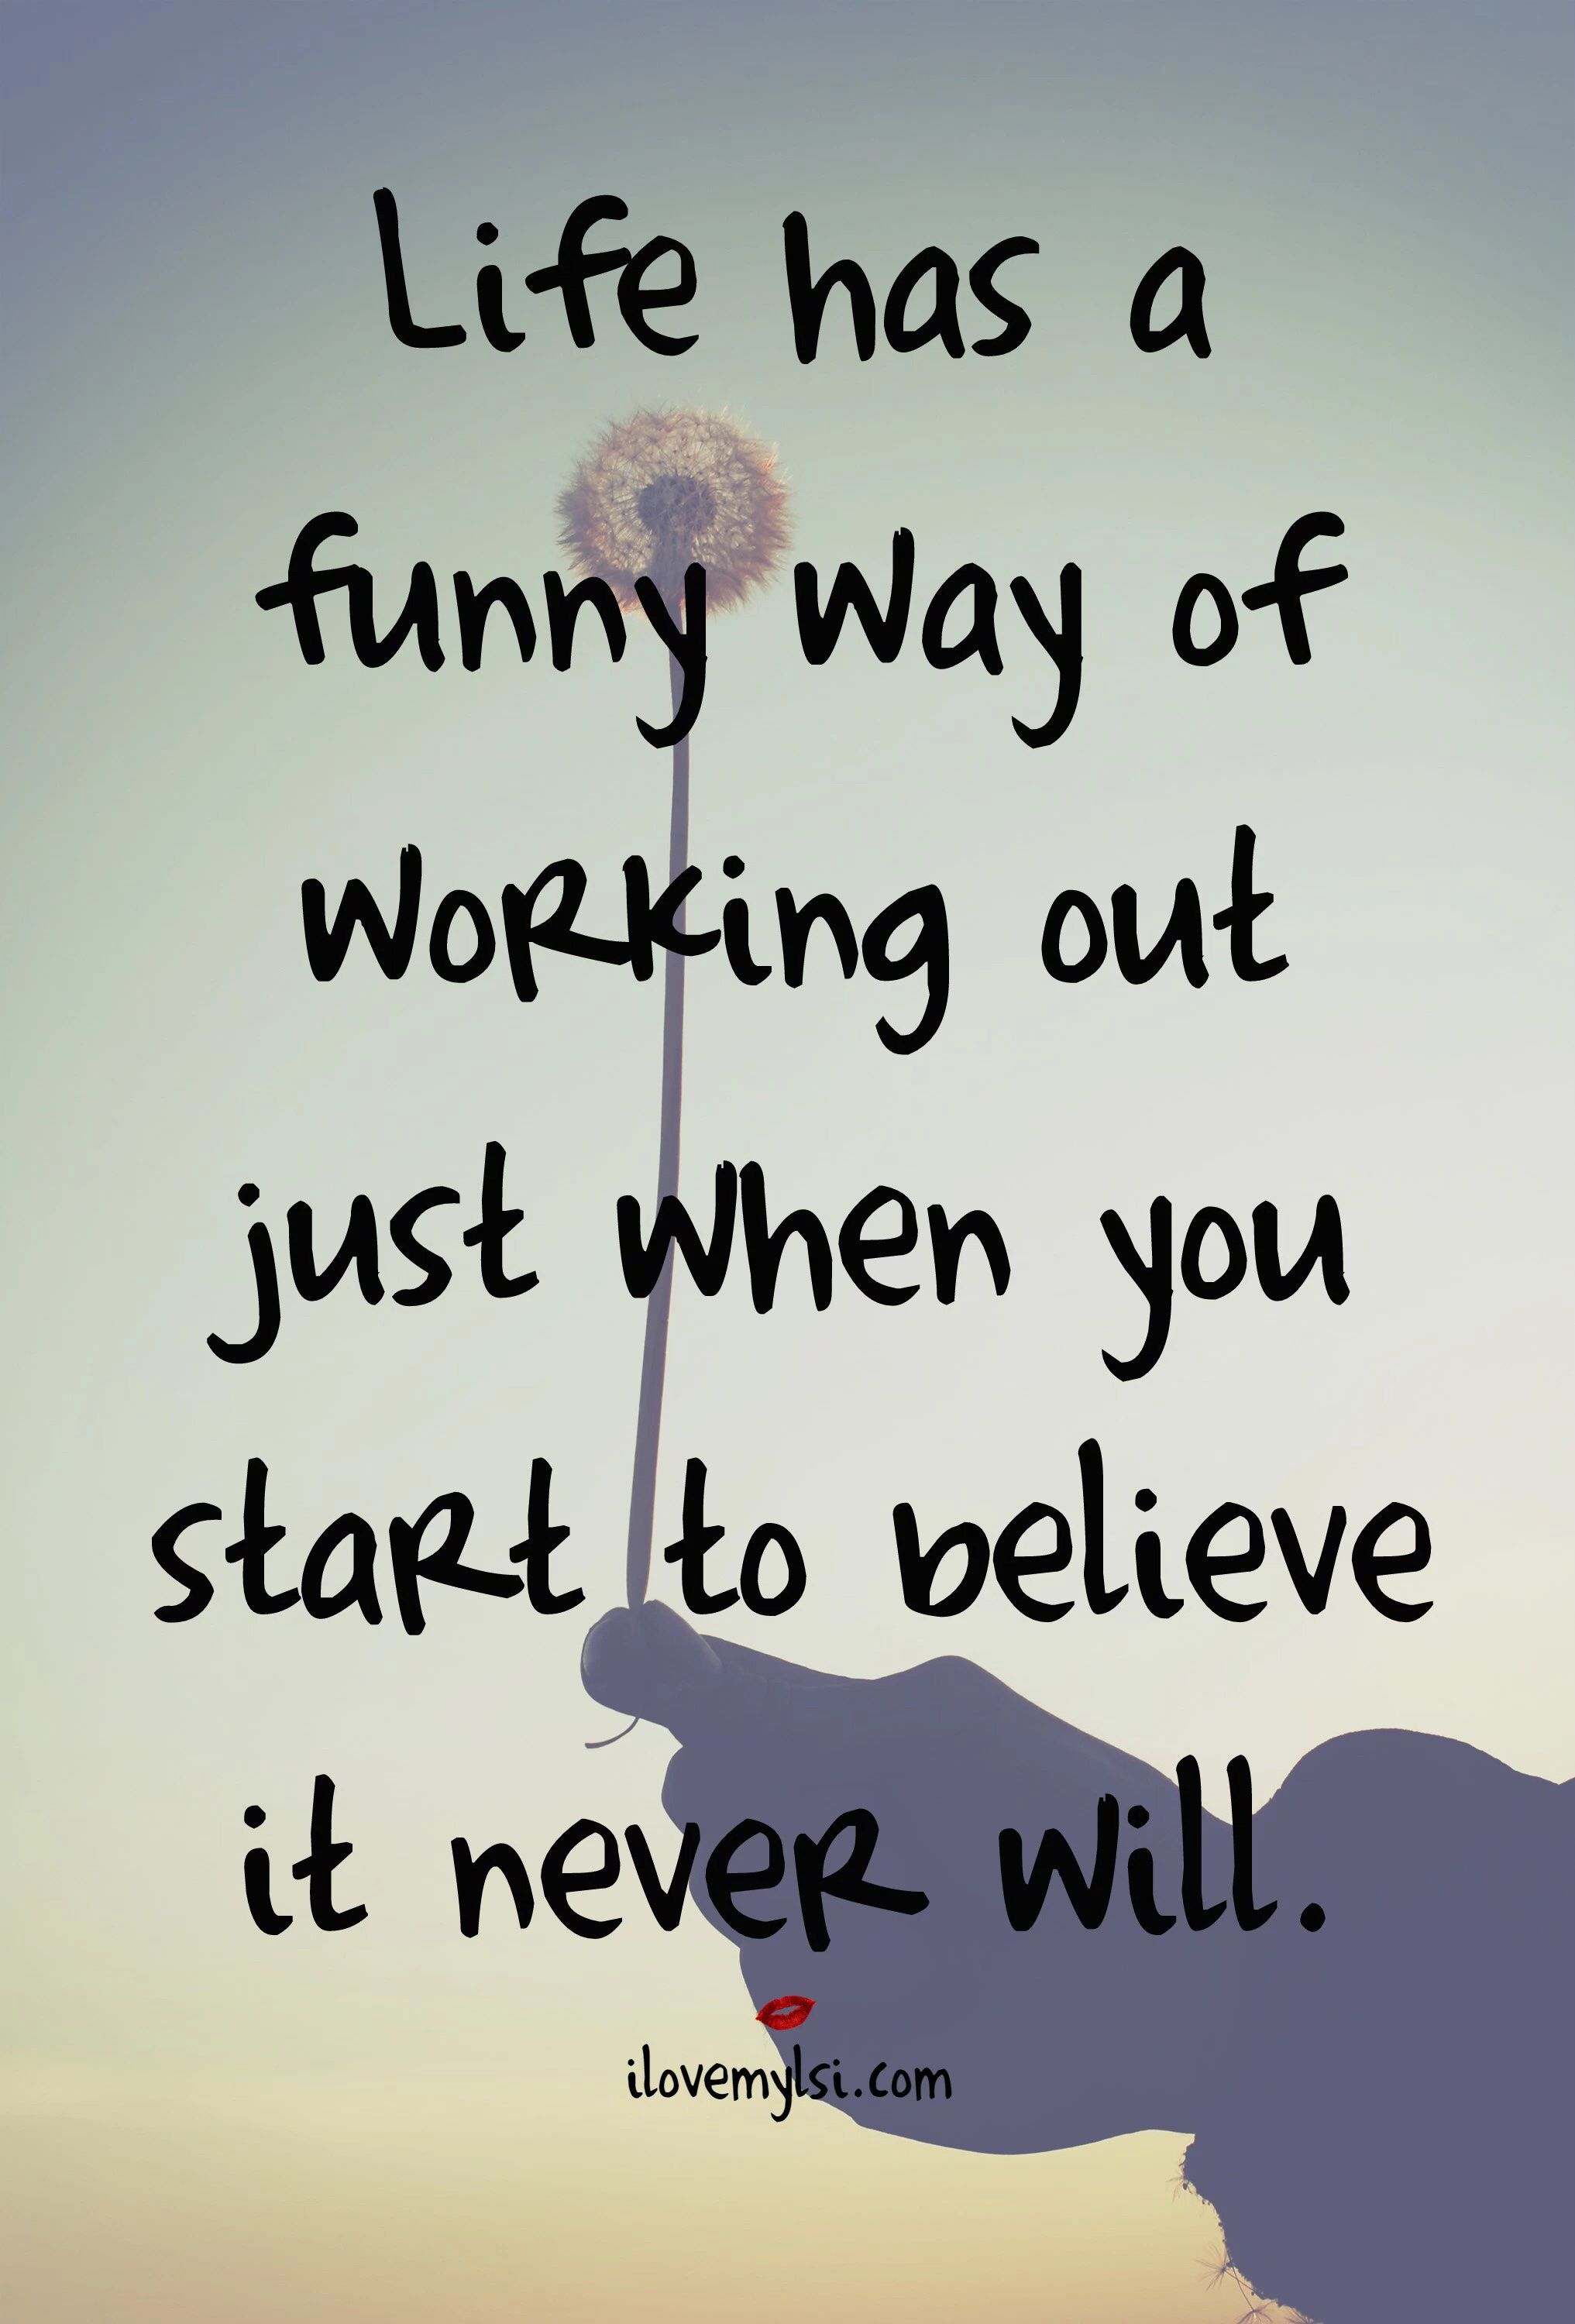 15 Life Has A Funny Way Of Working Out Quotes | Best life ...